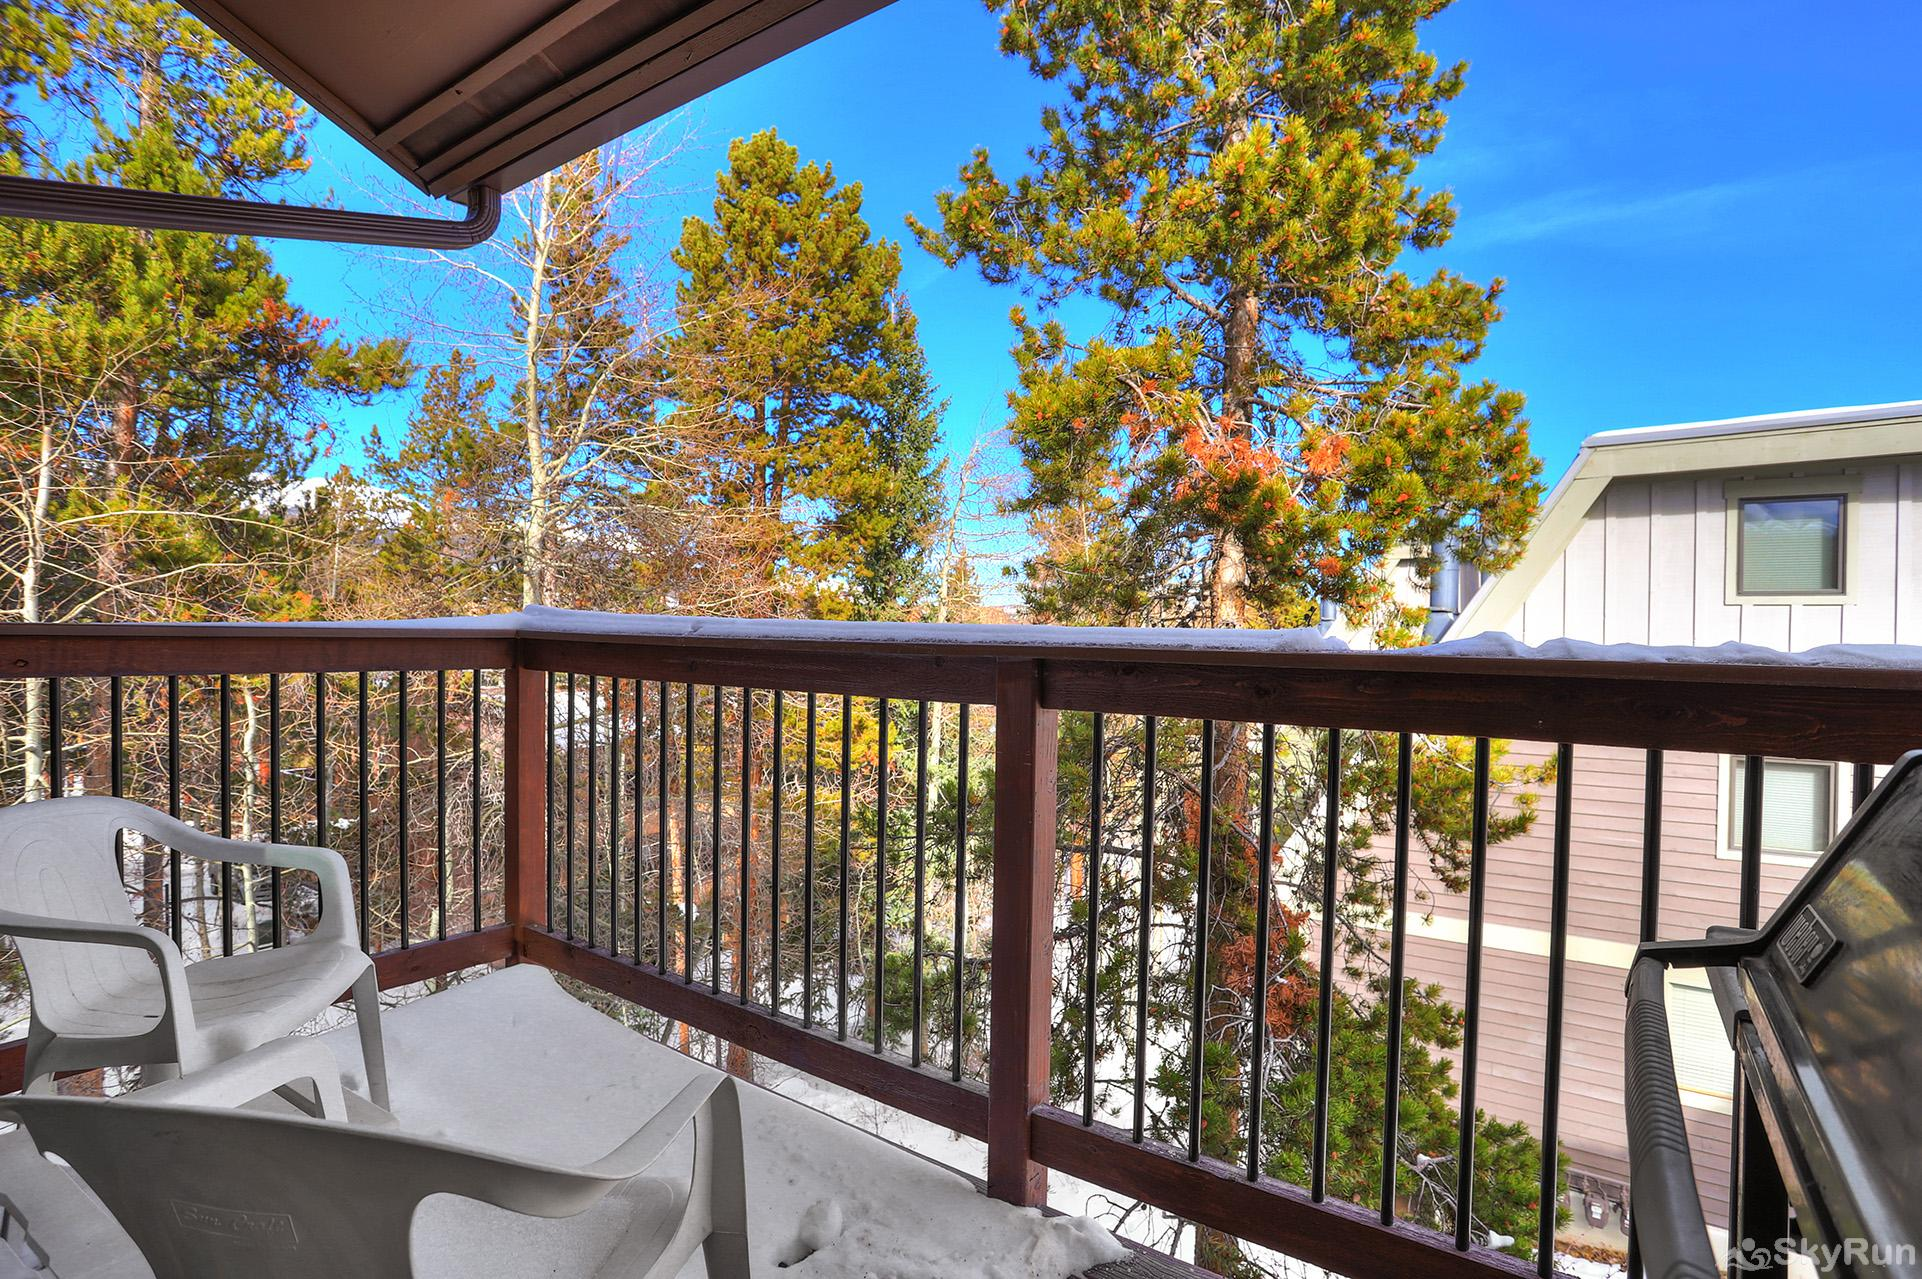 Lances West 13 Private balcony with a view